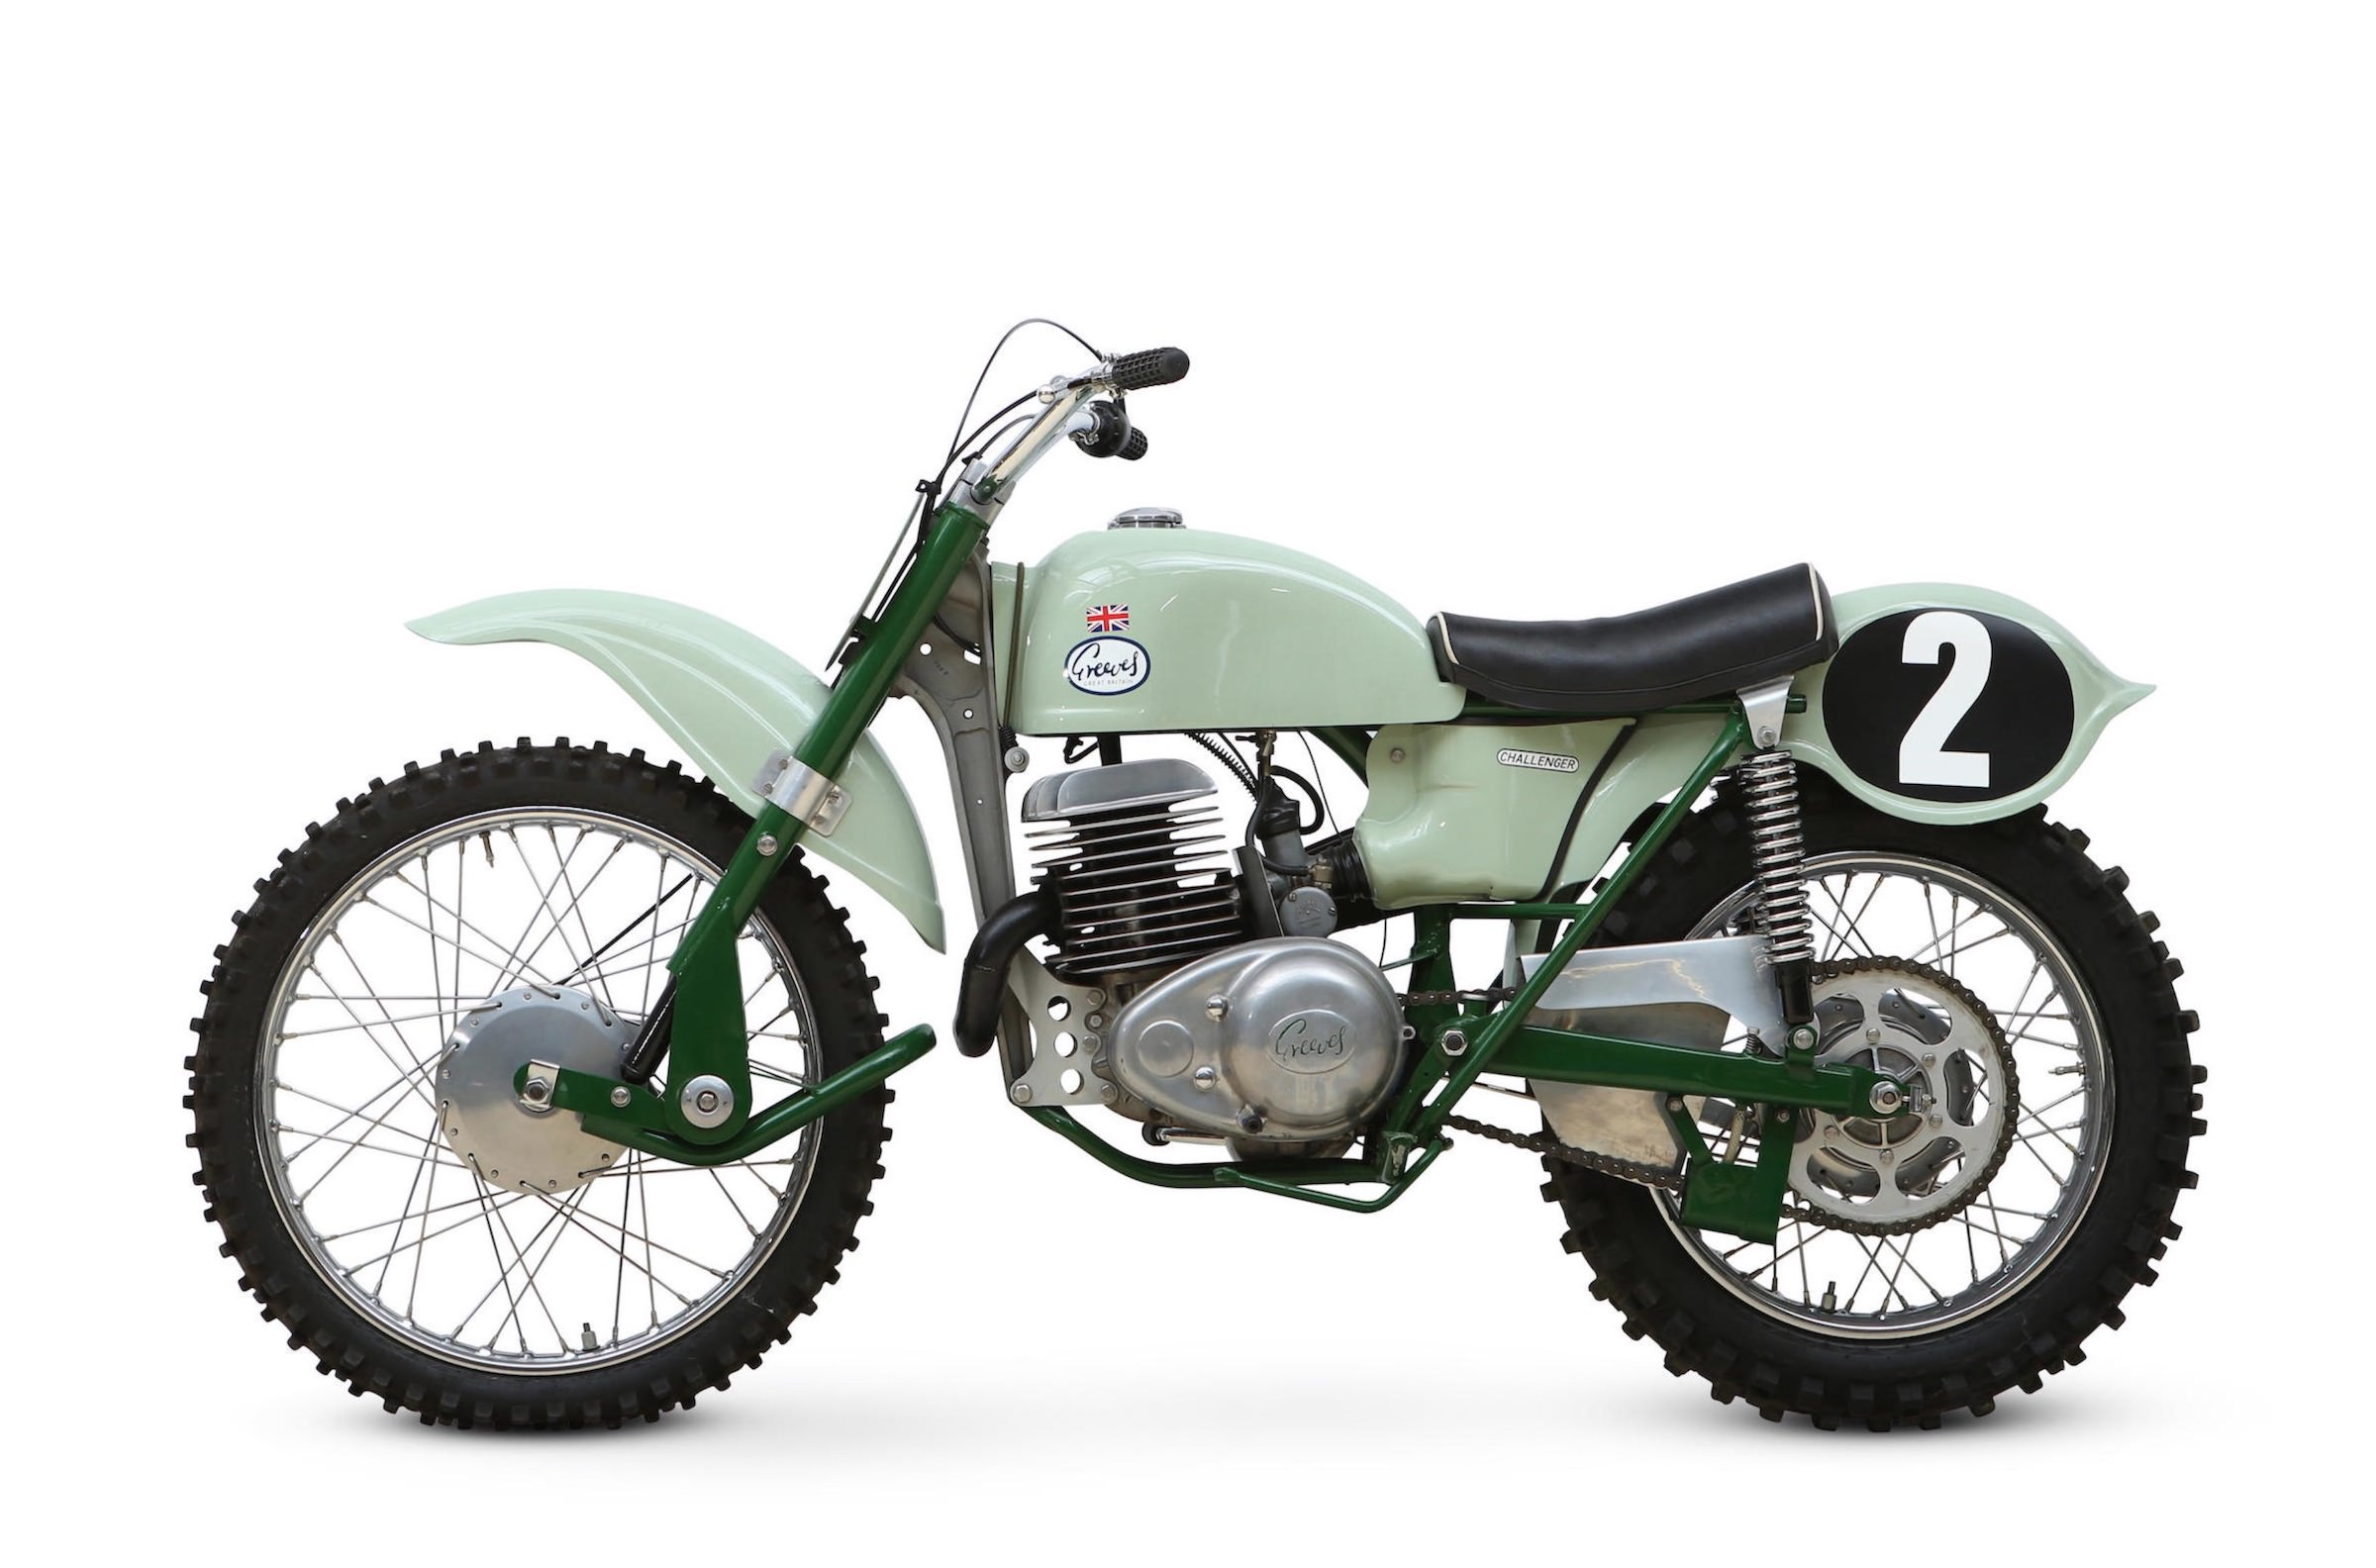 The Greeves Challenger The Unusual World Beating Two Stroke